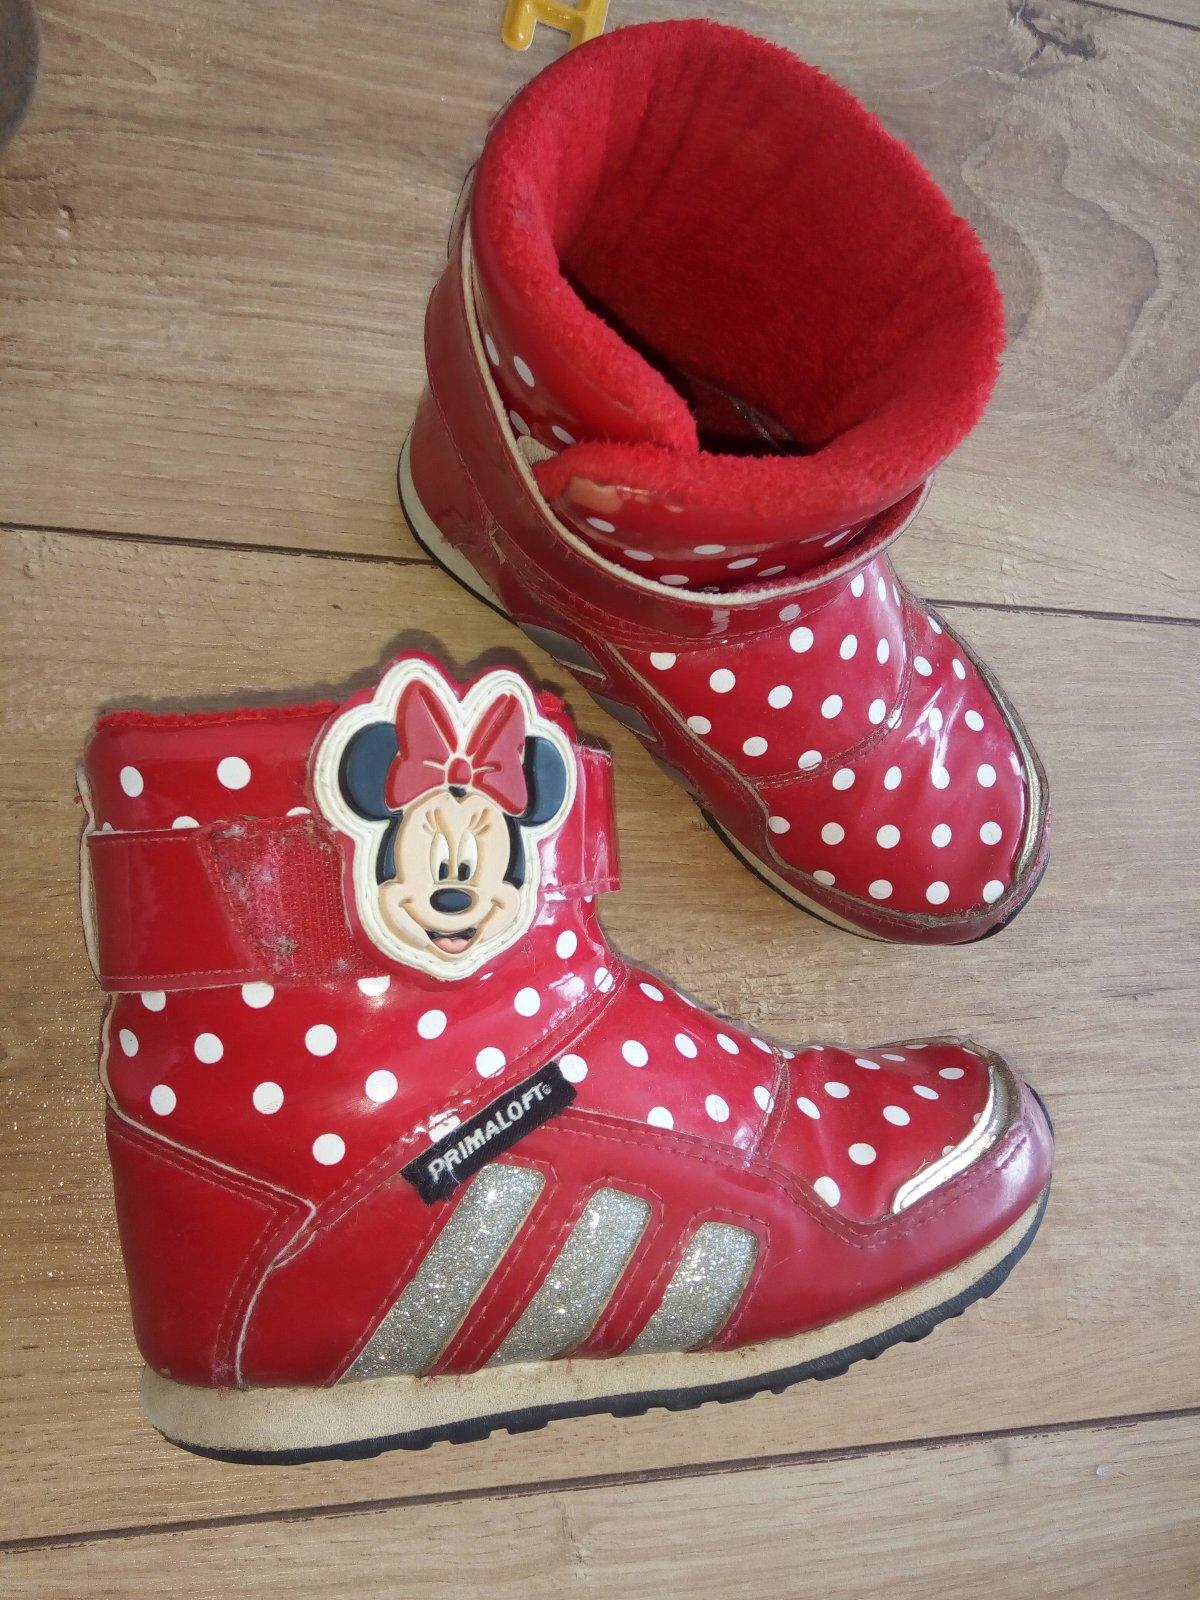 Minnie čižmy od adidas 9bcb291dad